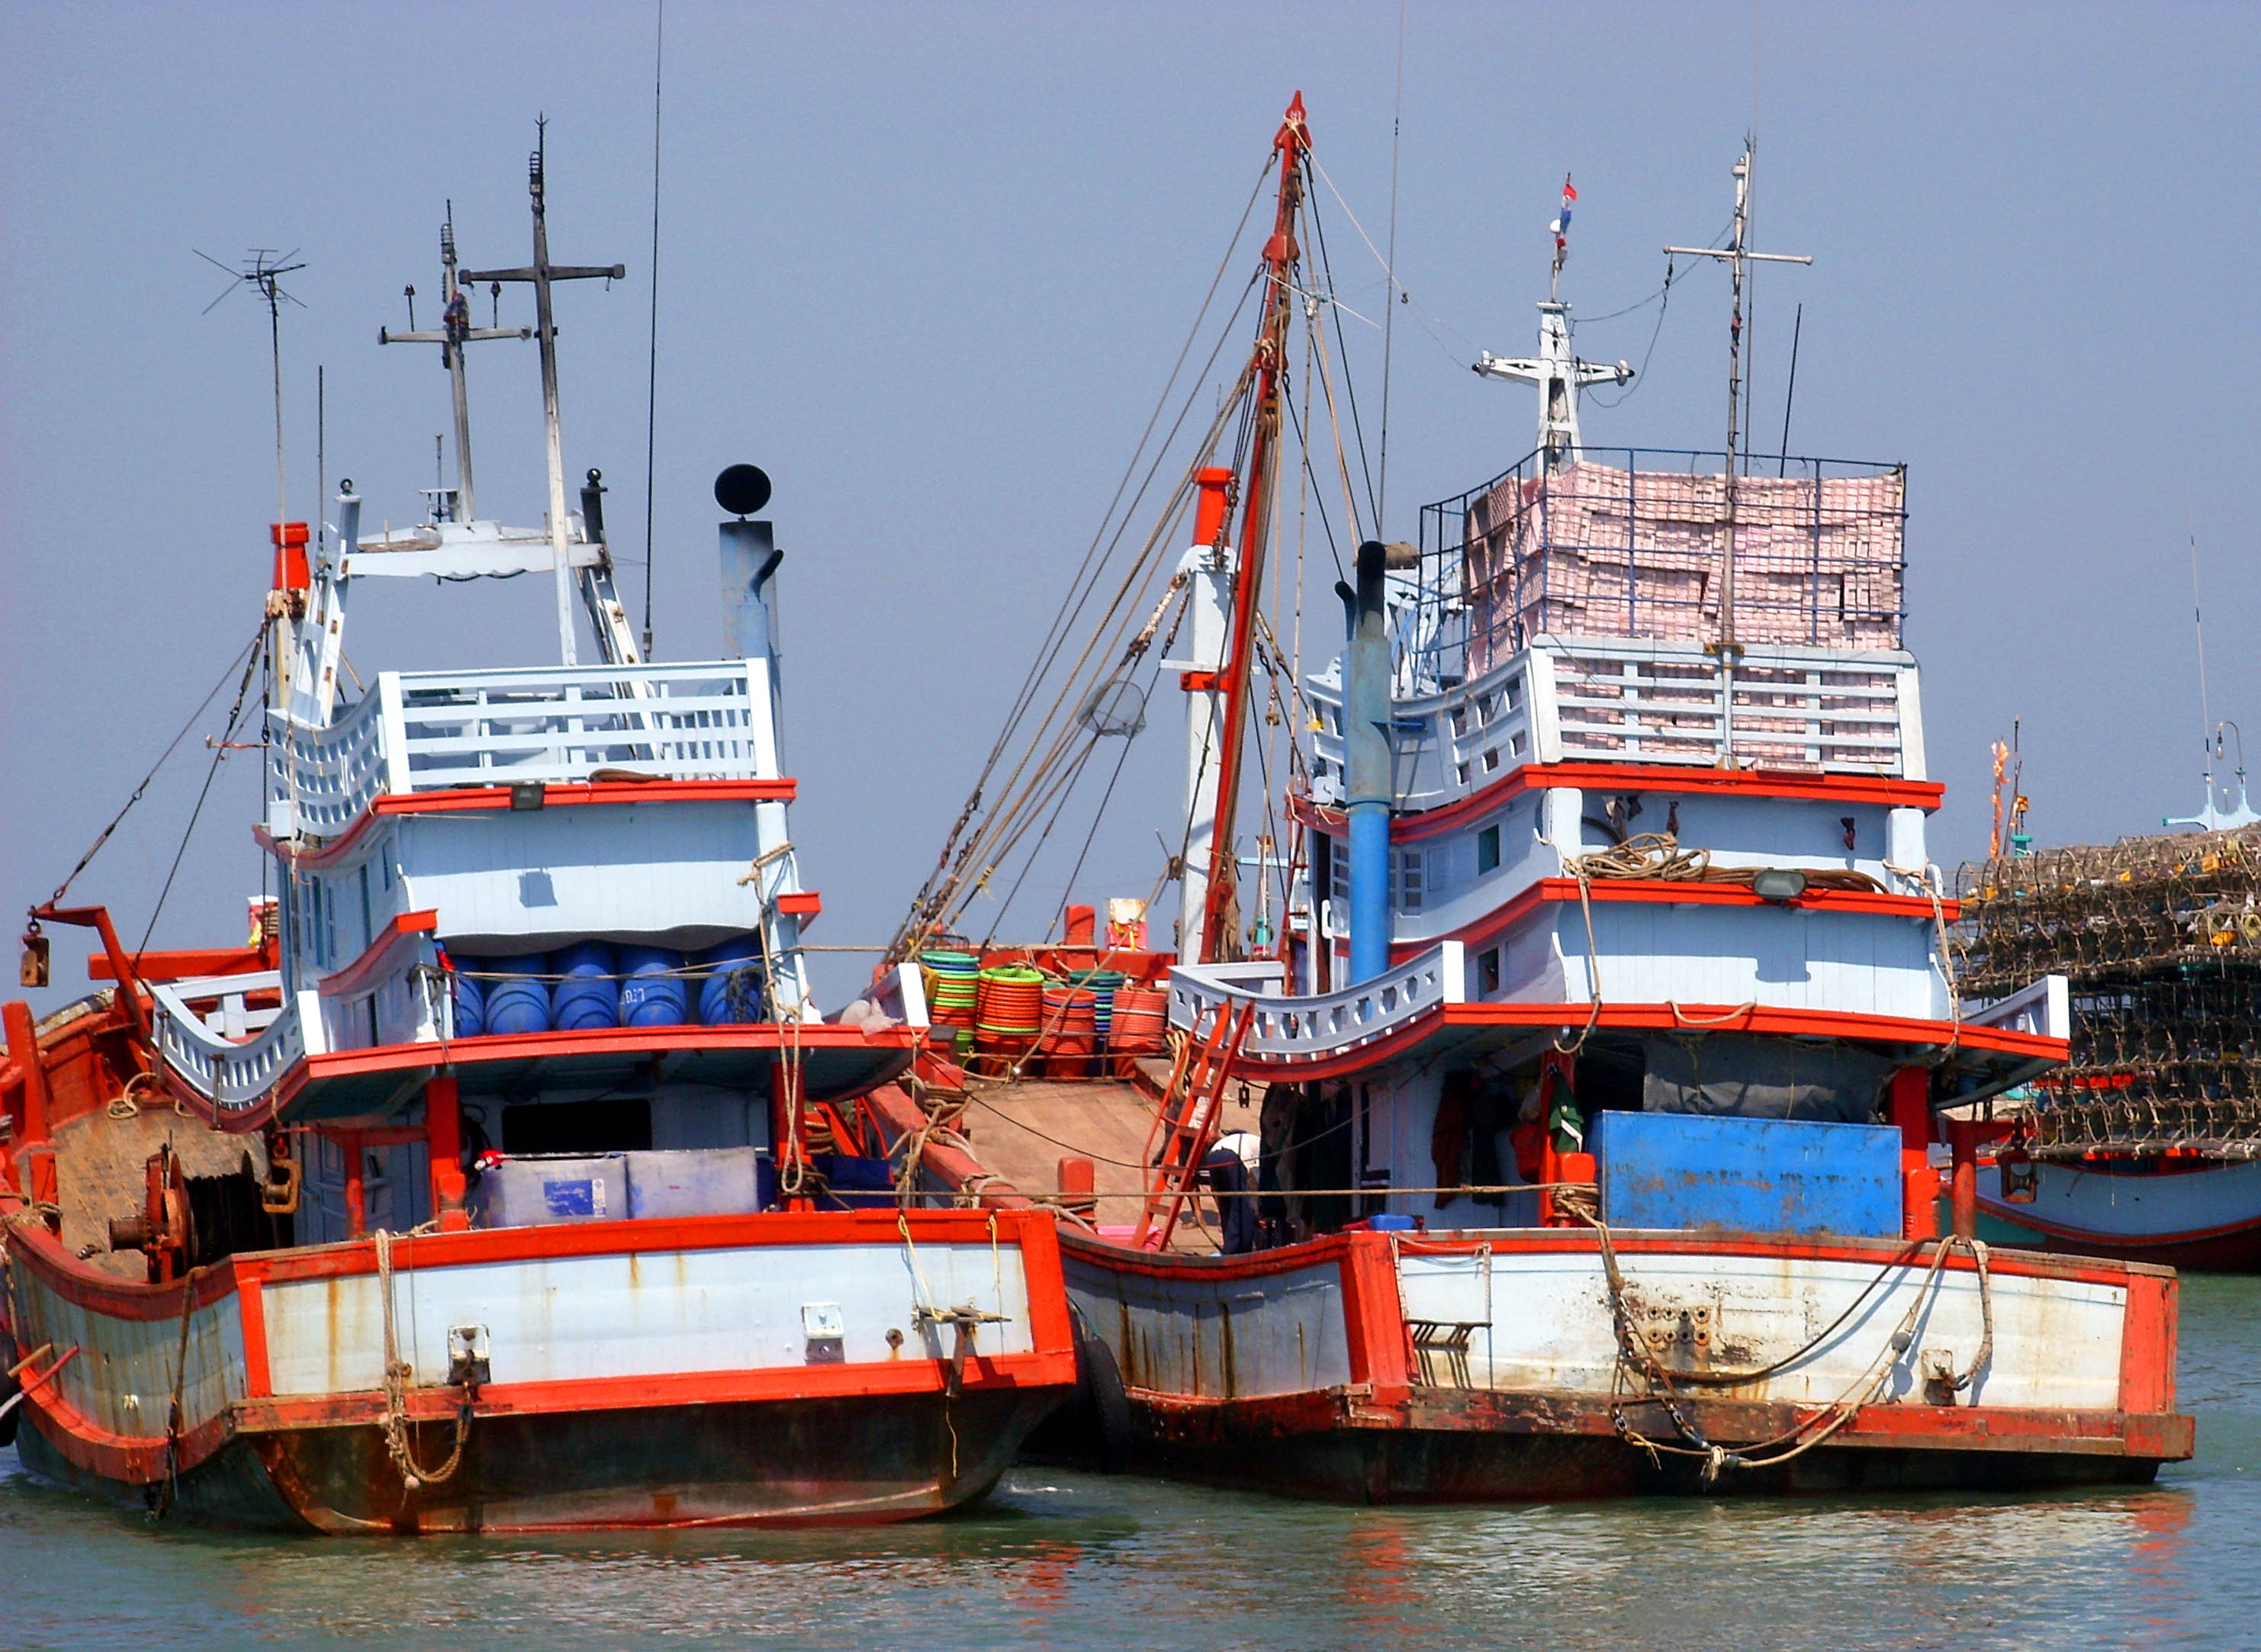 Two thai fishing boats photo